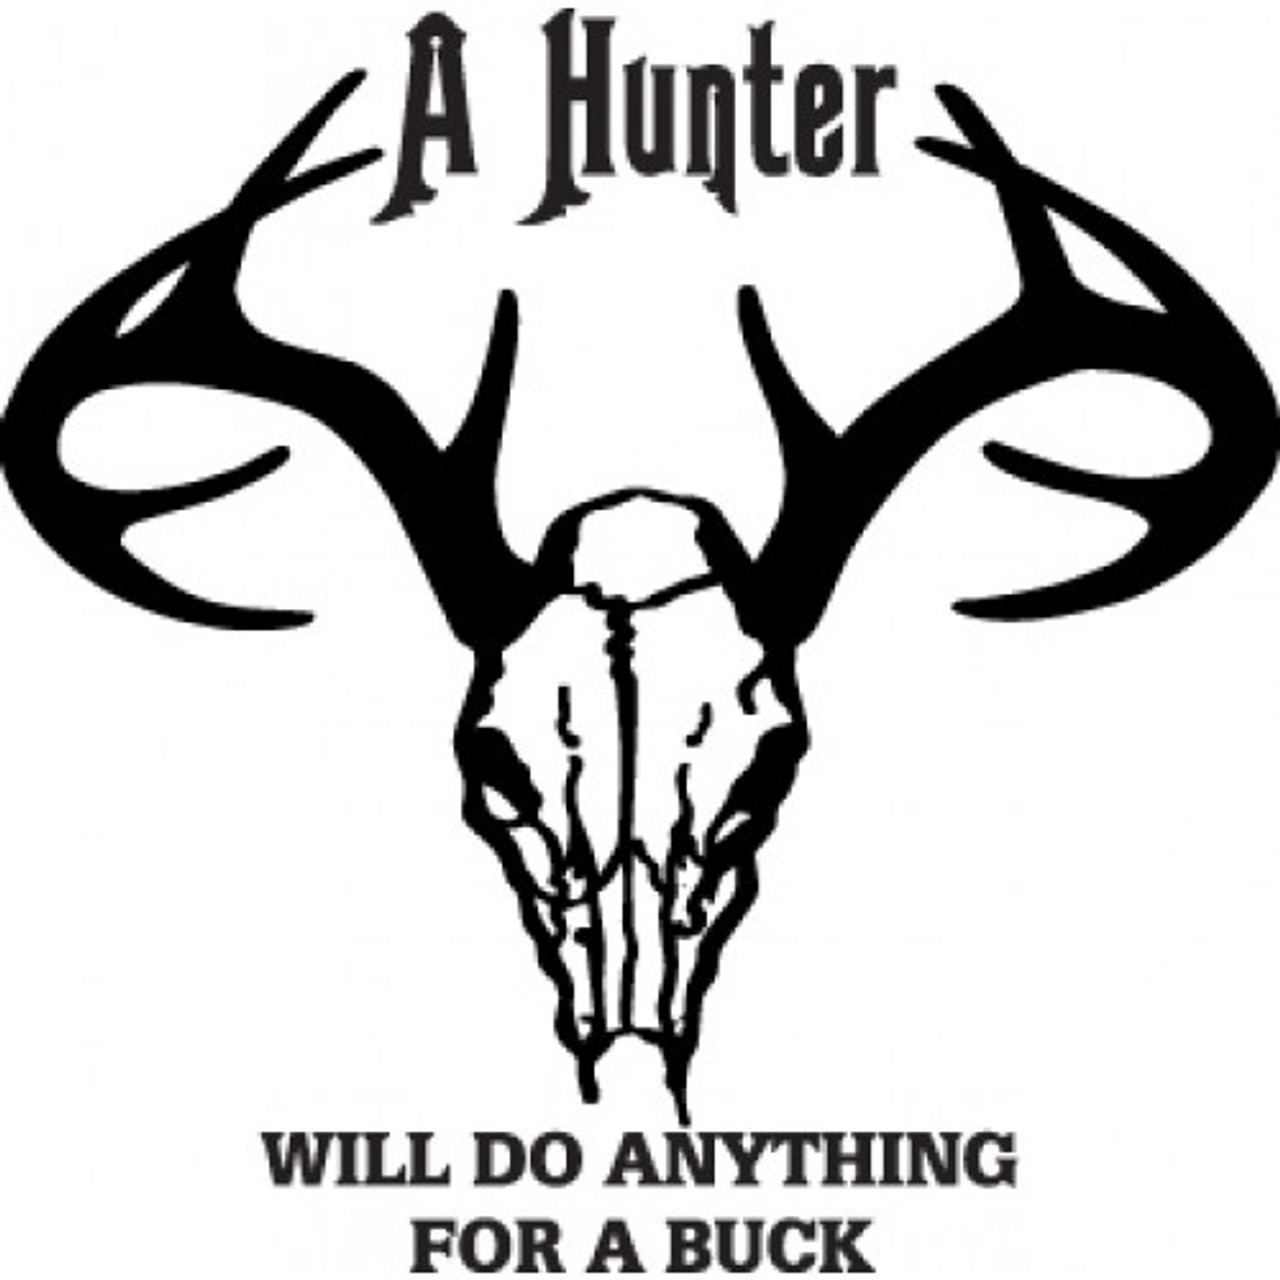 A hunter will do anything for a buck 2 decal sticker